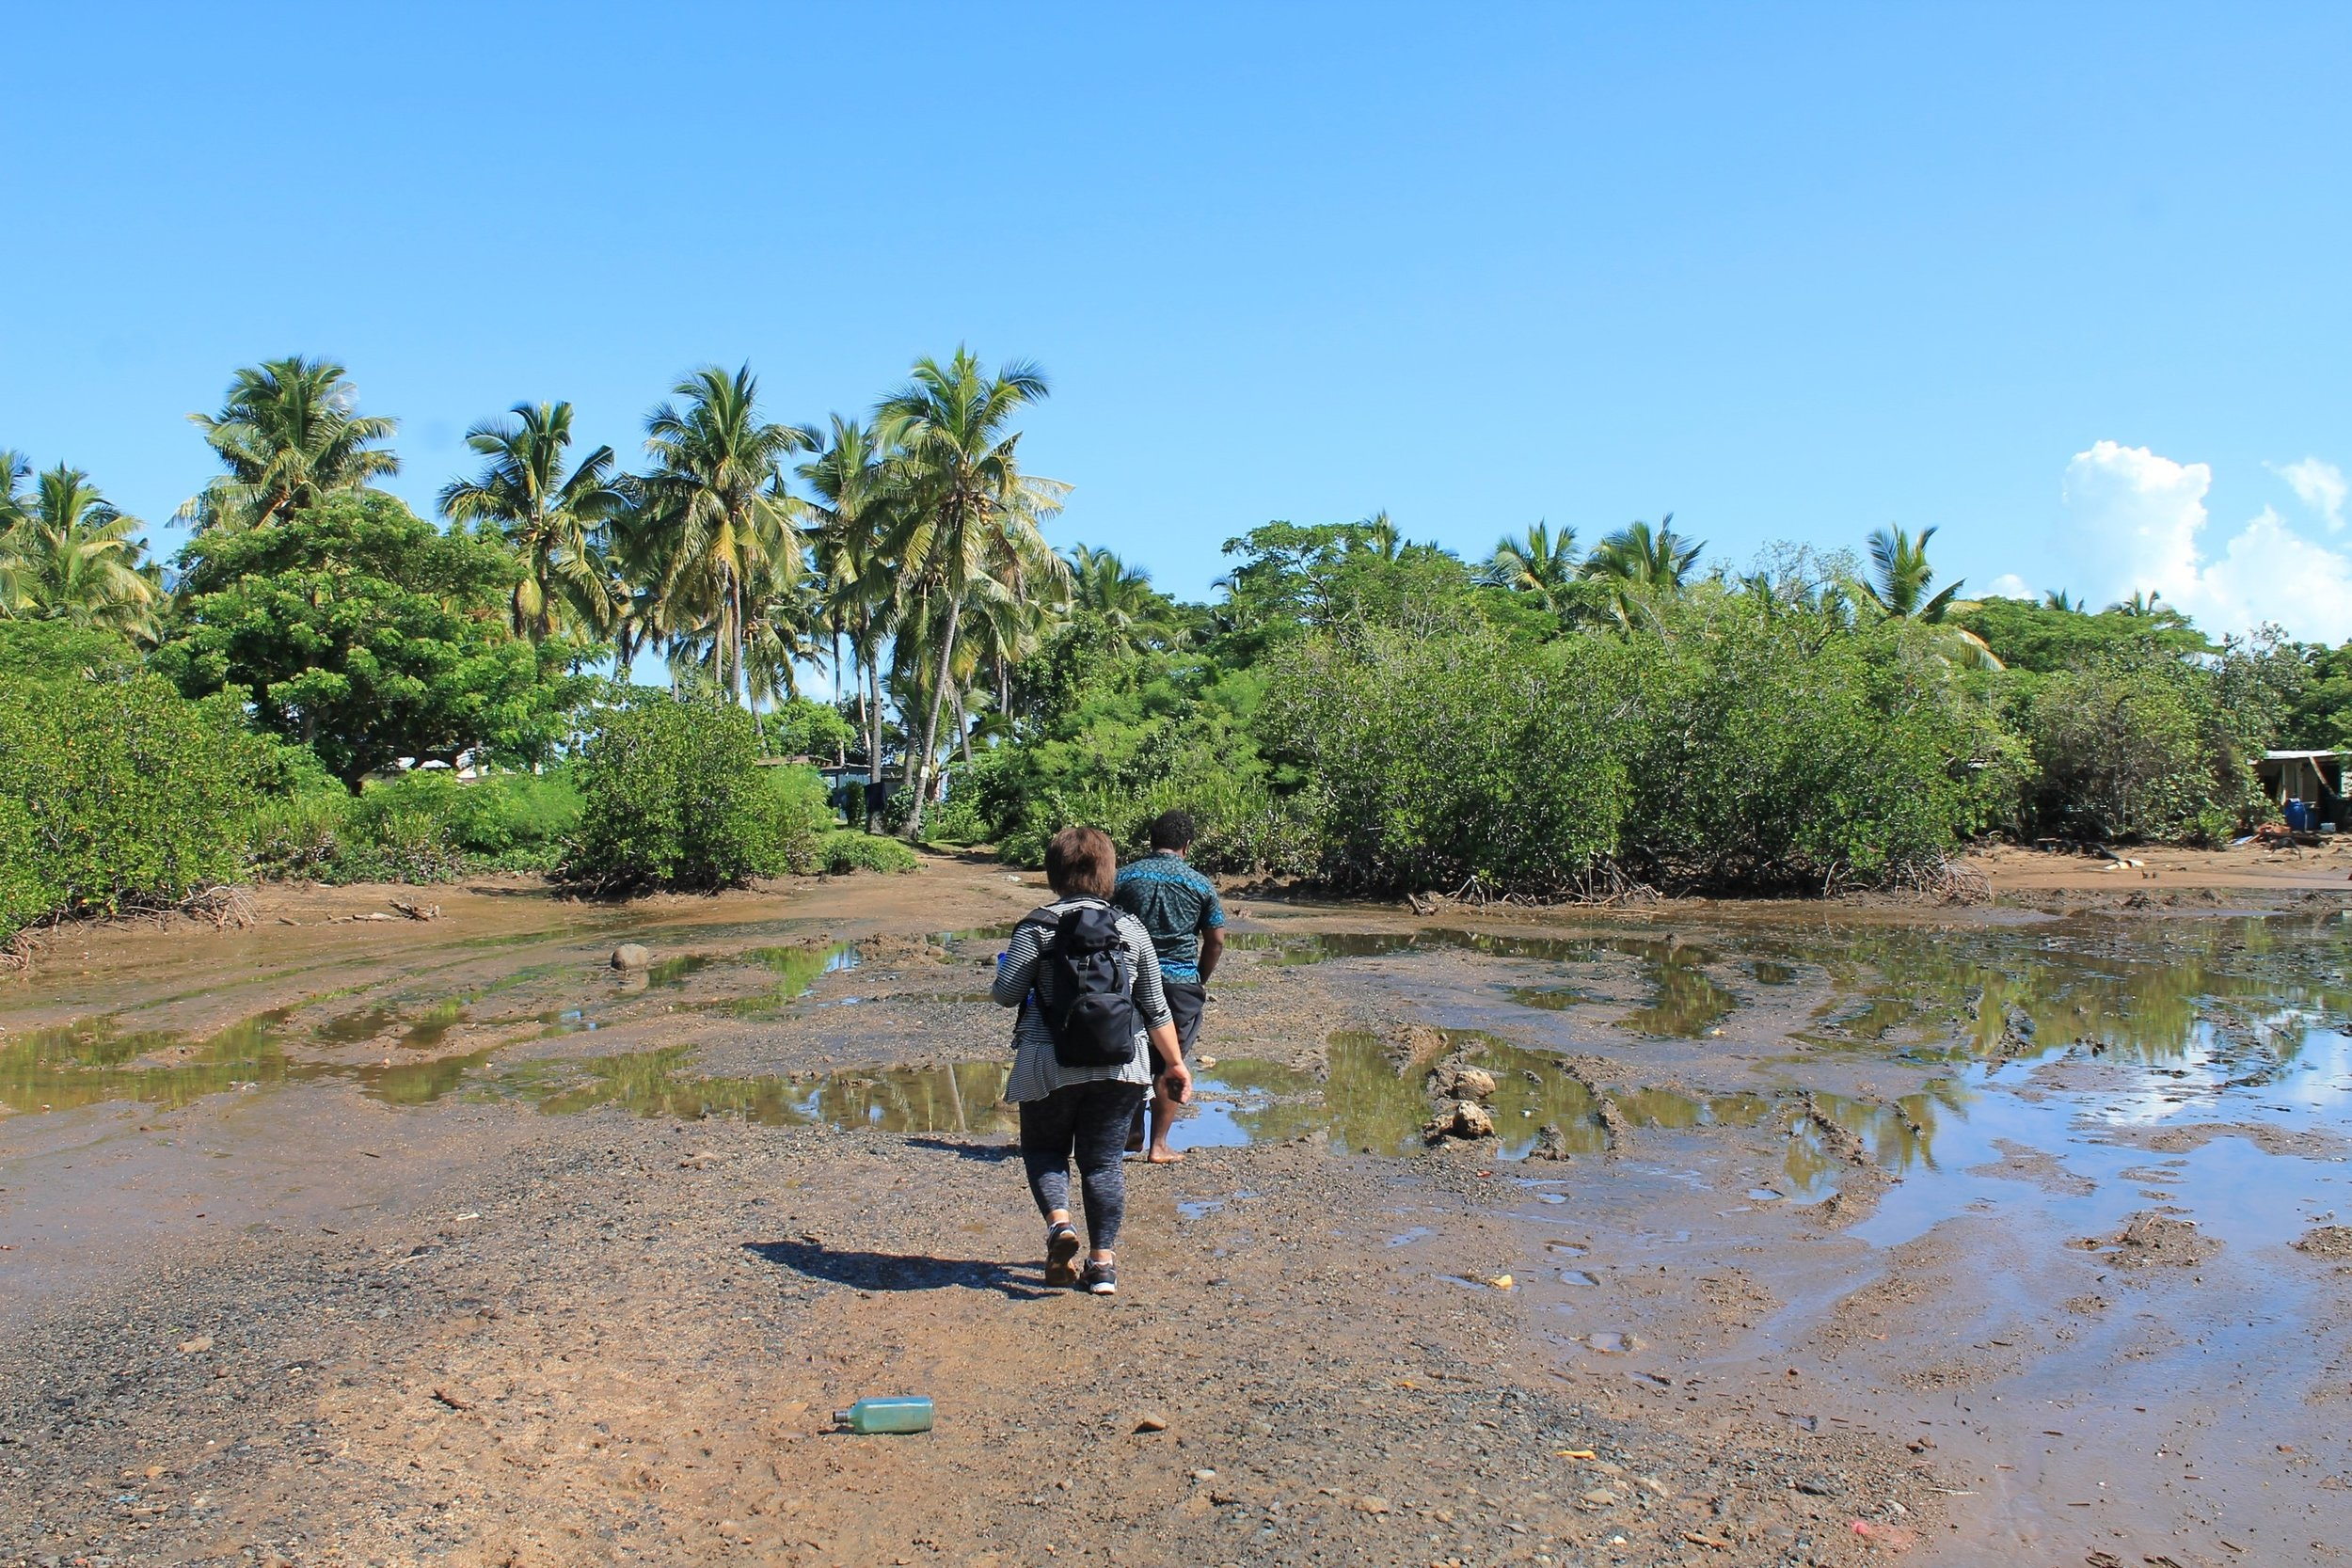 Near the end of the road leading to the community. Photo is taken of the flood-prone region of the road during low-tide. Photo By Yanik Rozon